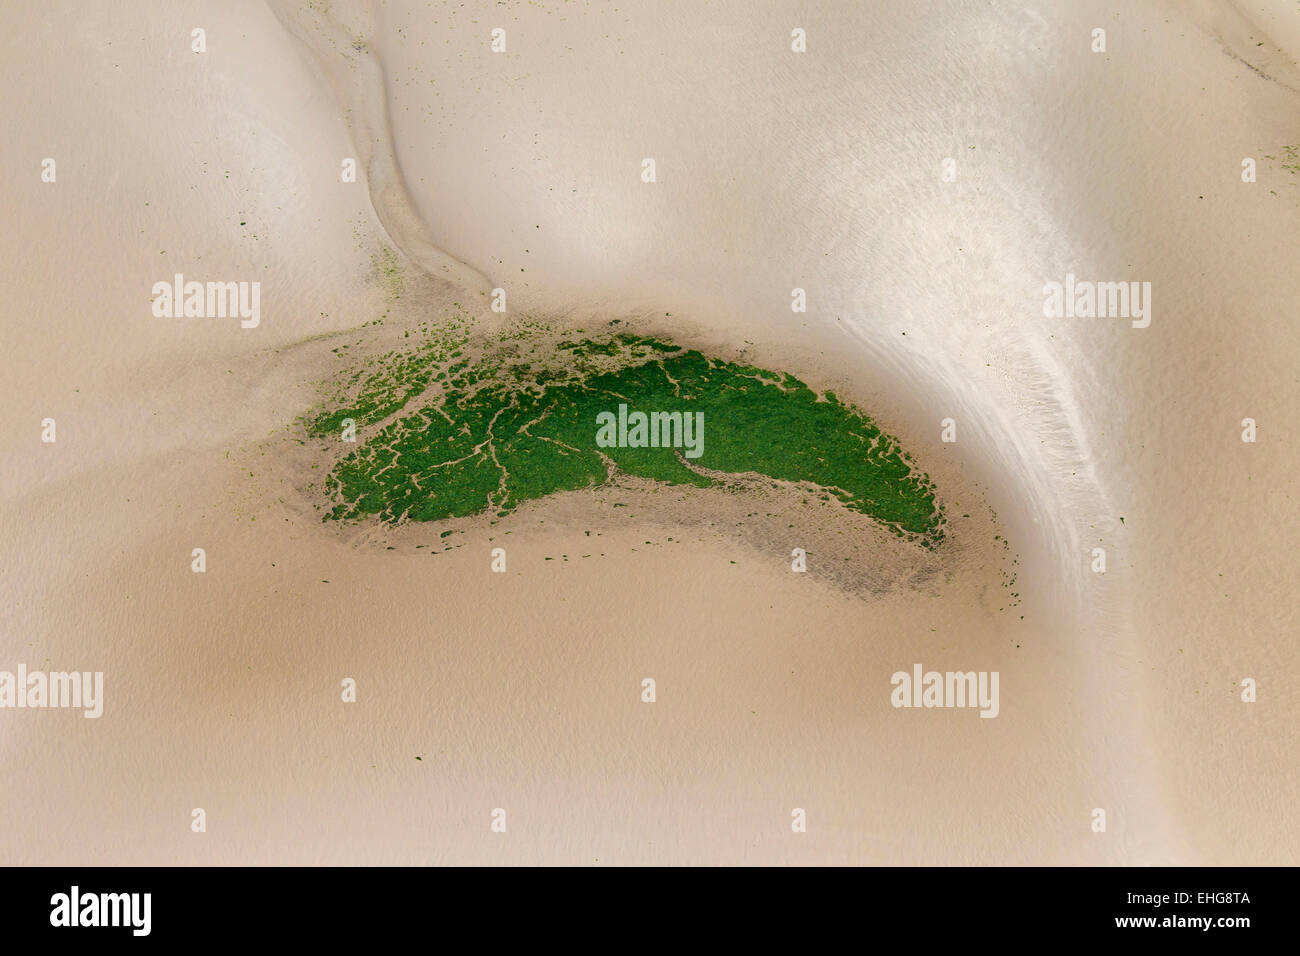 Aerial view of tidal mudflats and seagrass / eelgrass (Zostera marina), Schleswig-Holstein Wadden Sea National Park, - Stock Image